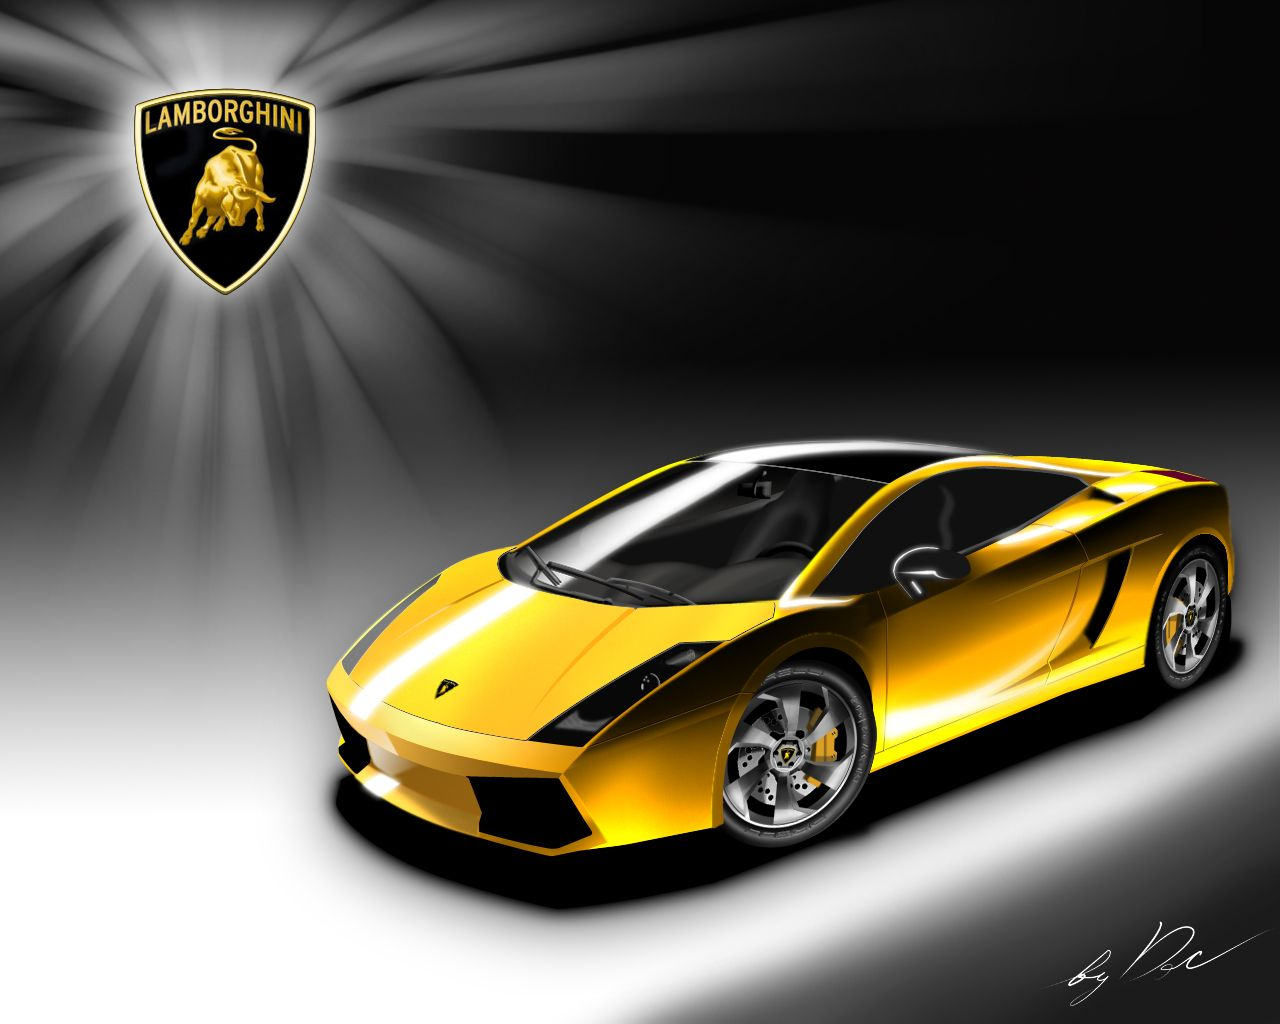 While we receive compensation when you click links to. Lamborghini Wallpapers Download Group 75